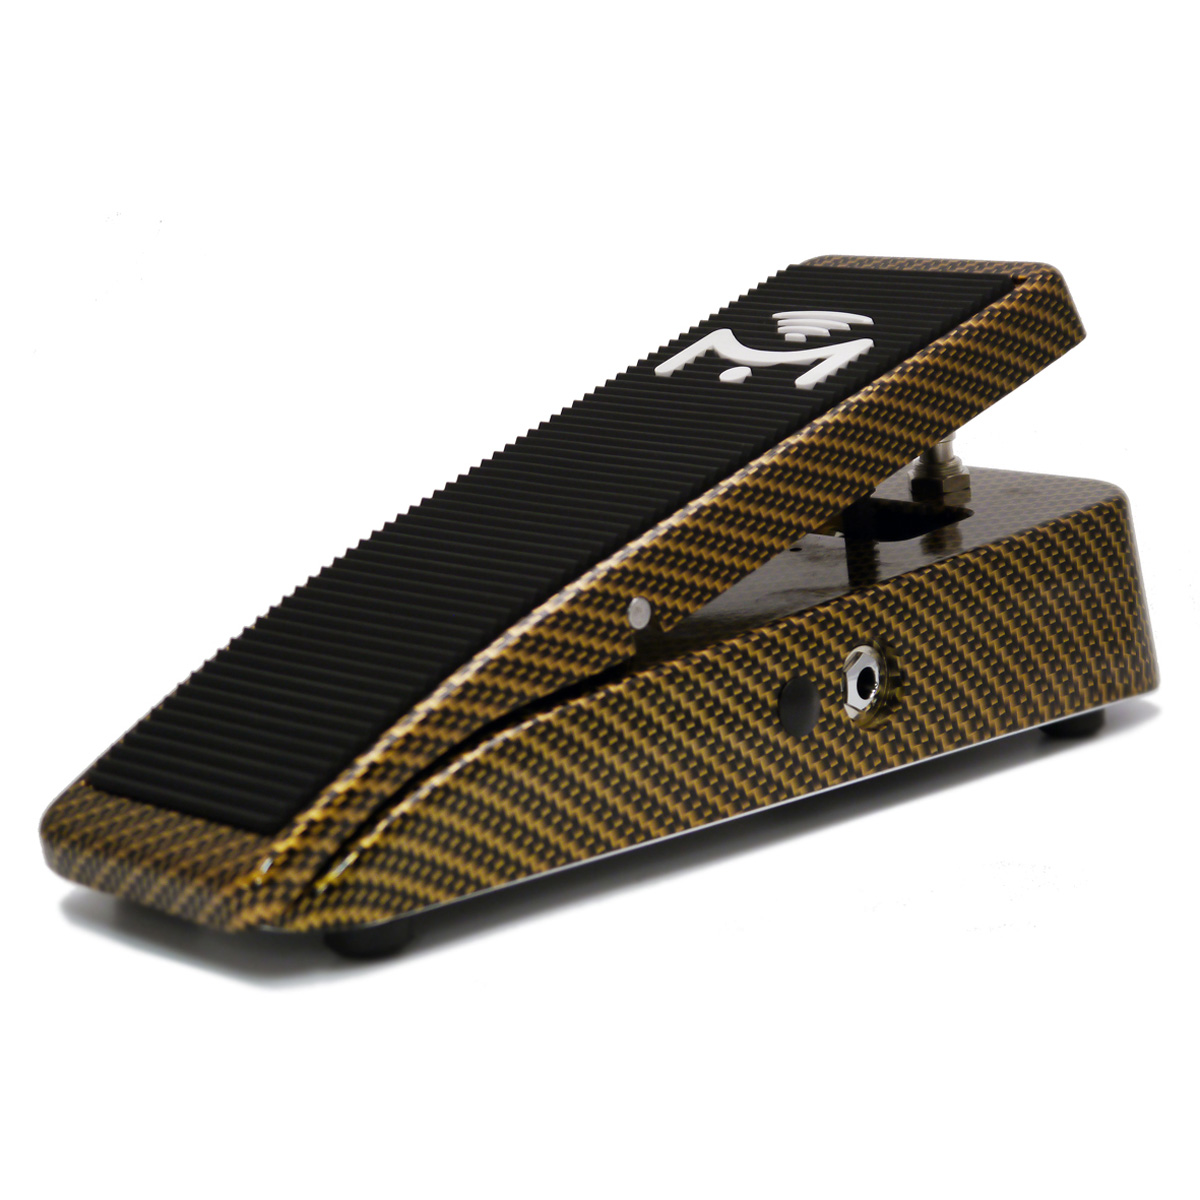 Mission Engineering SP-25-M Pro Aero Dual Channel Expression Pedal w/ Toe Switch - gold carbon